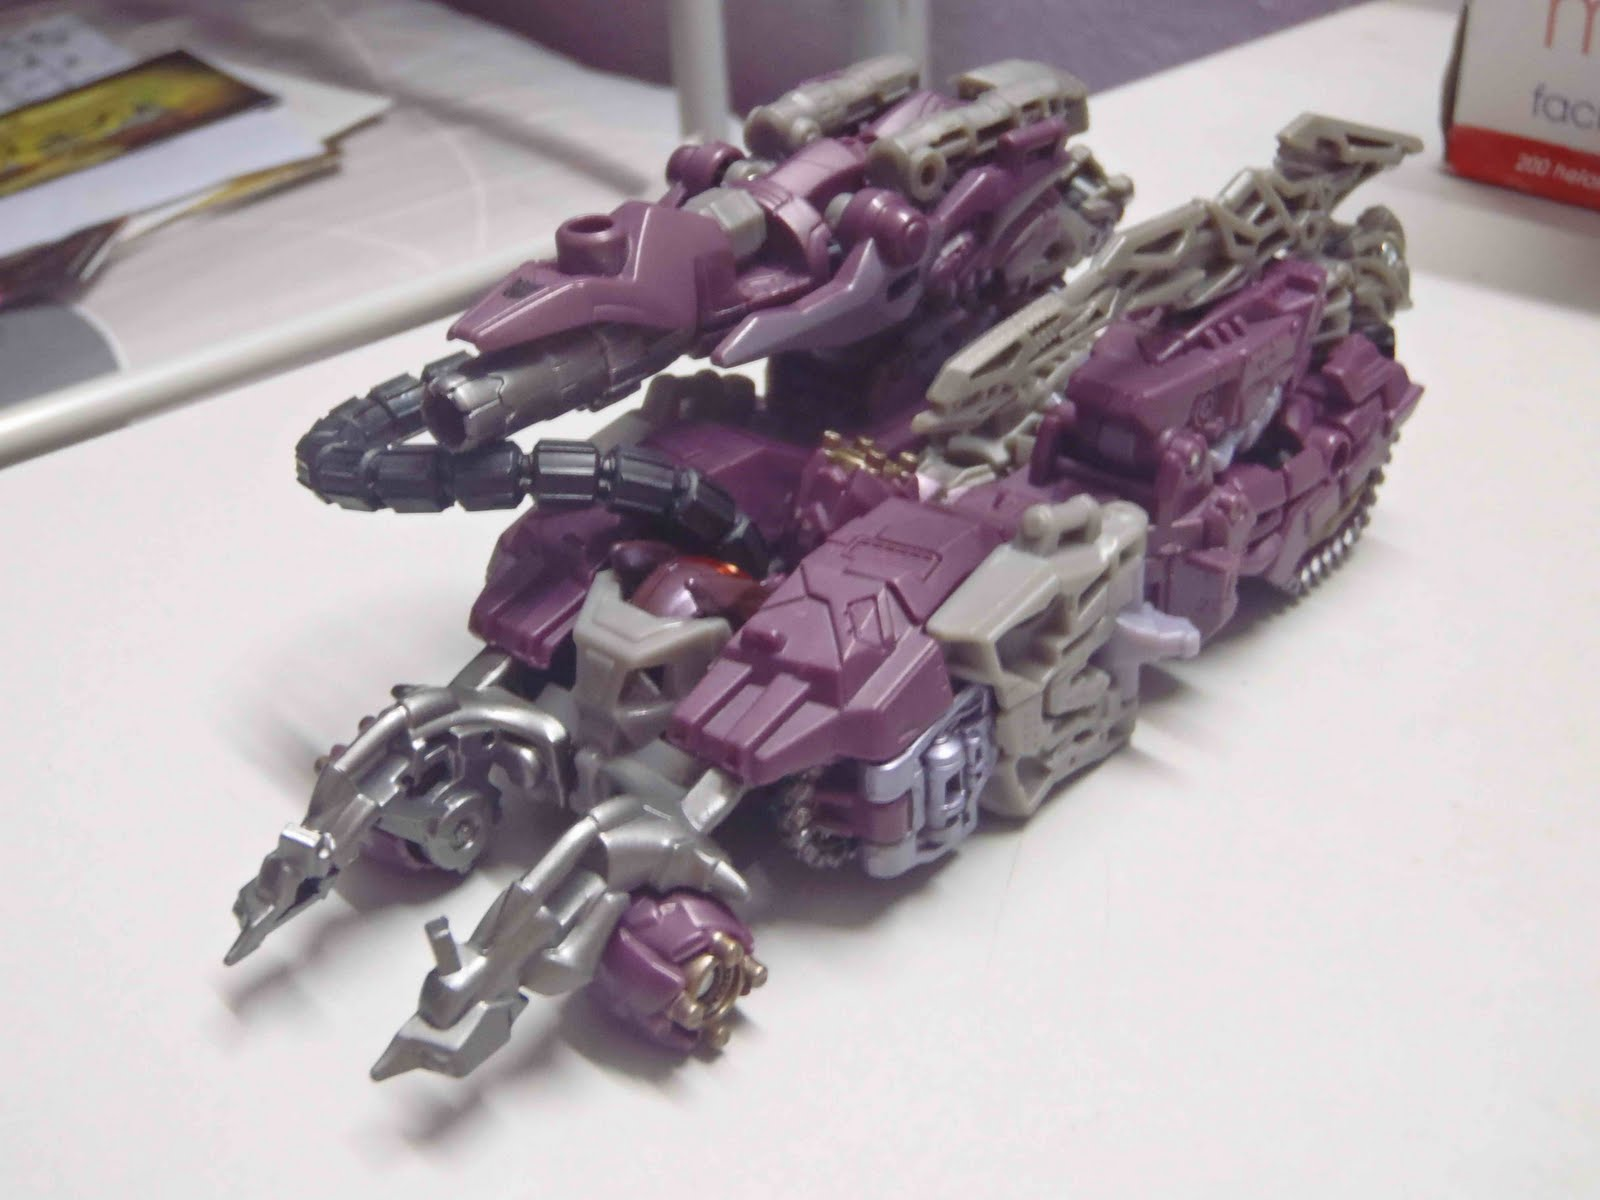 Transformers Dotm Shockwave Shockwave Transforms Into One